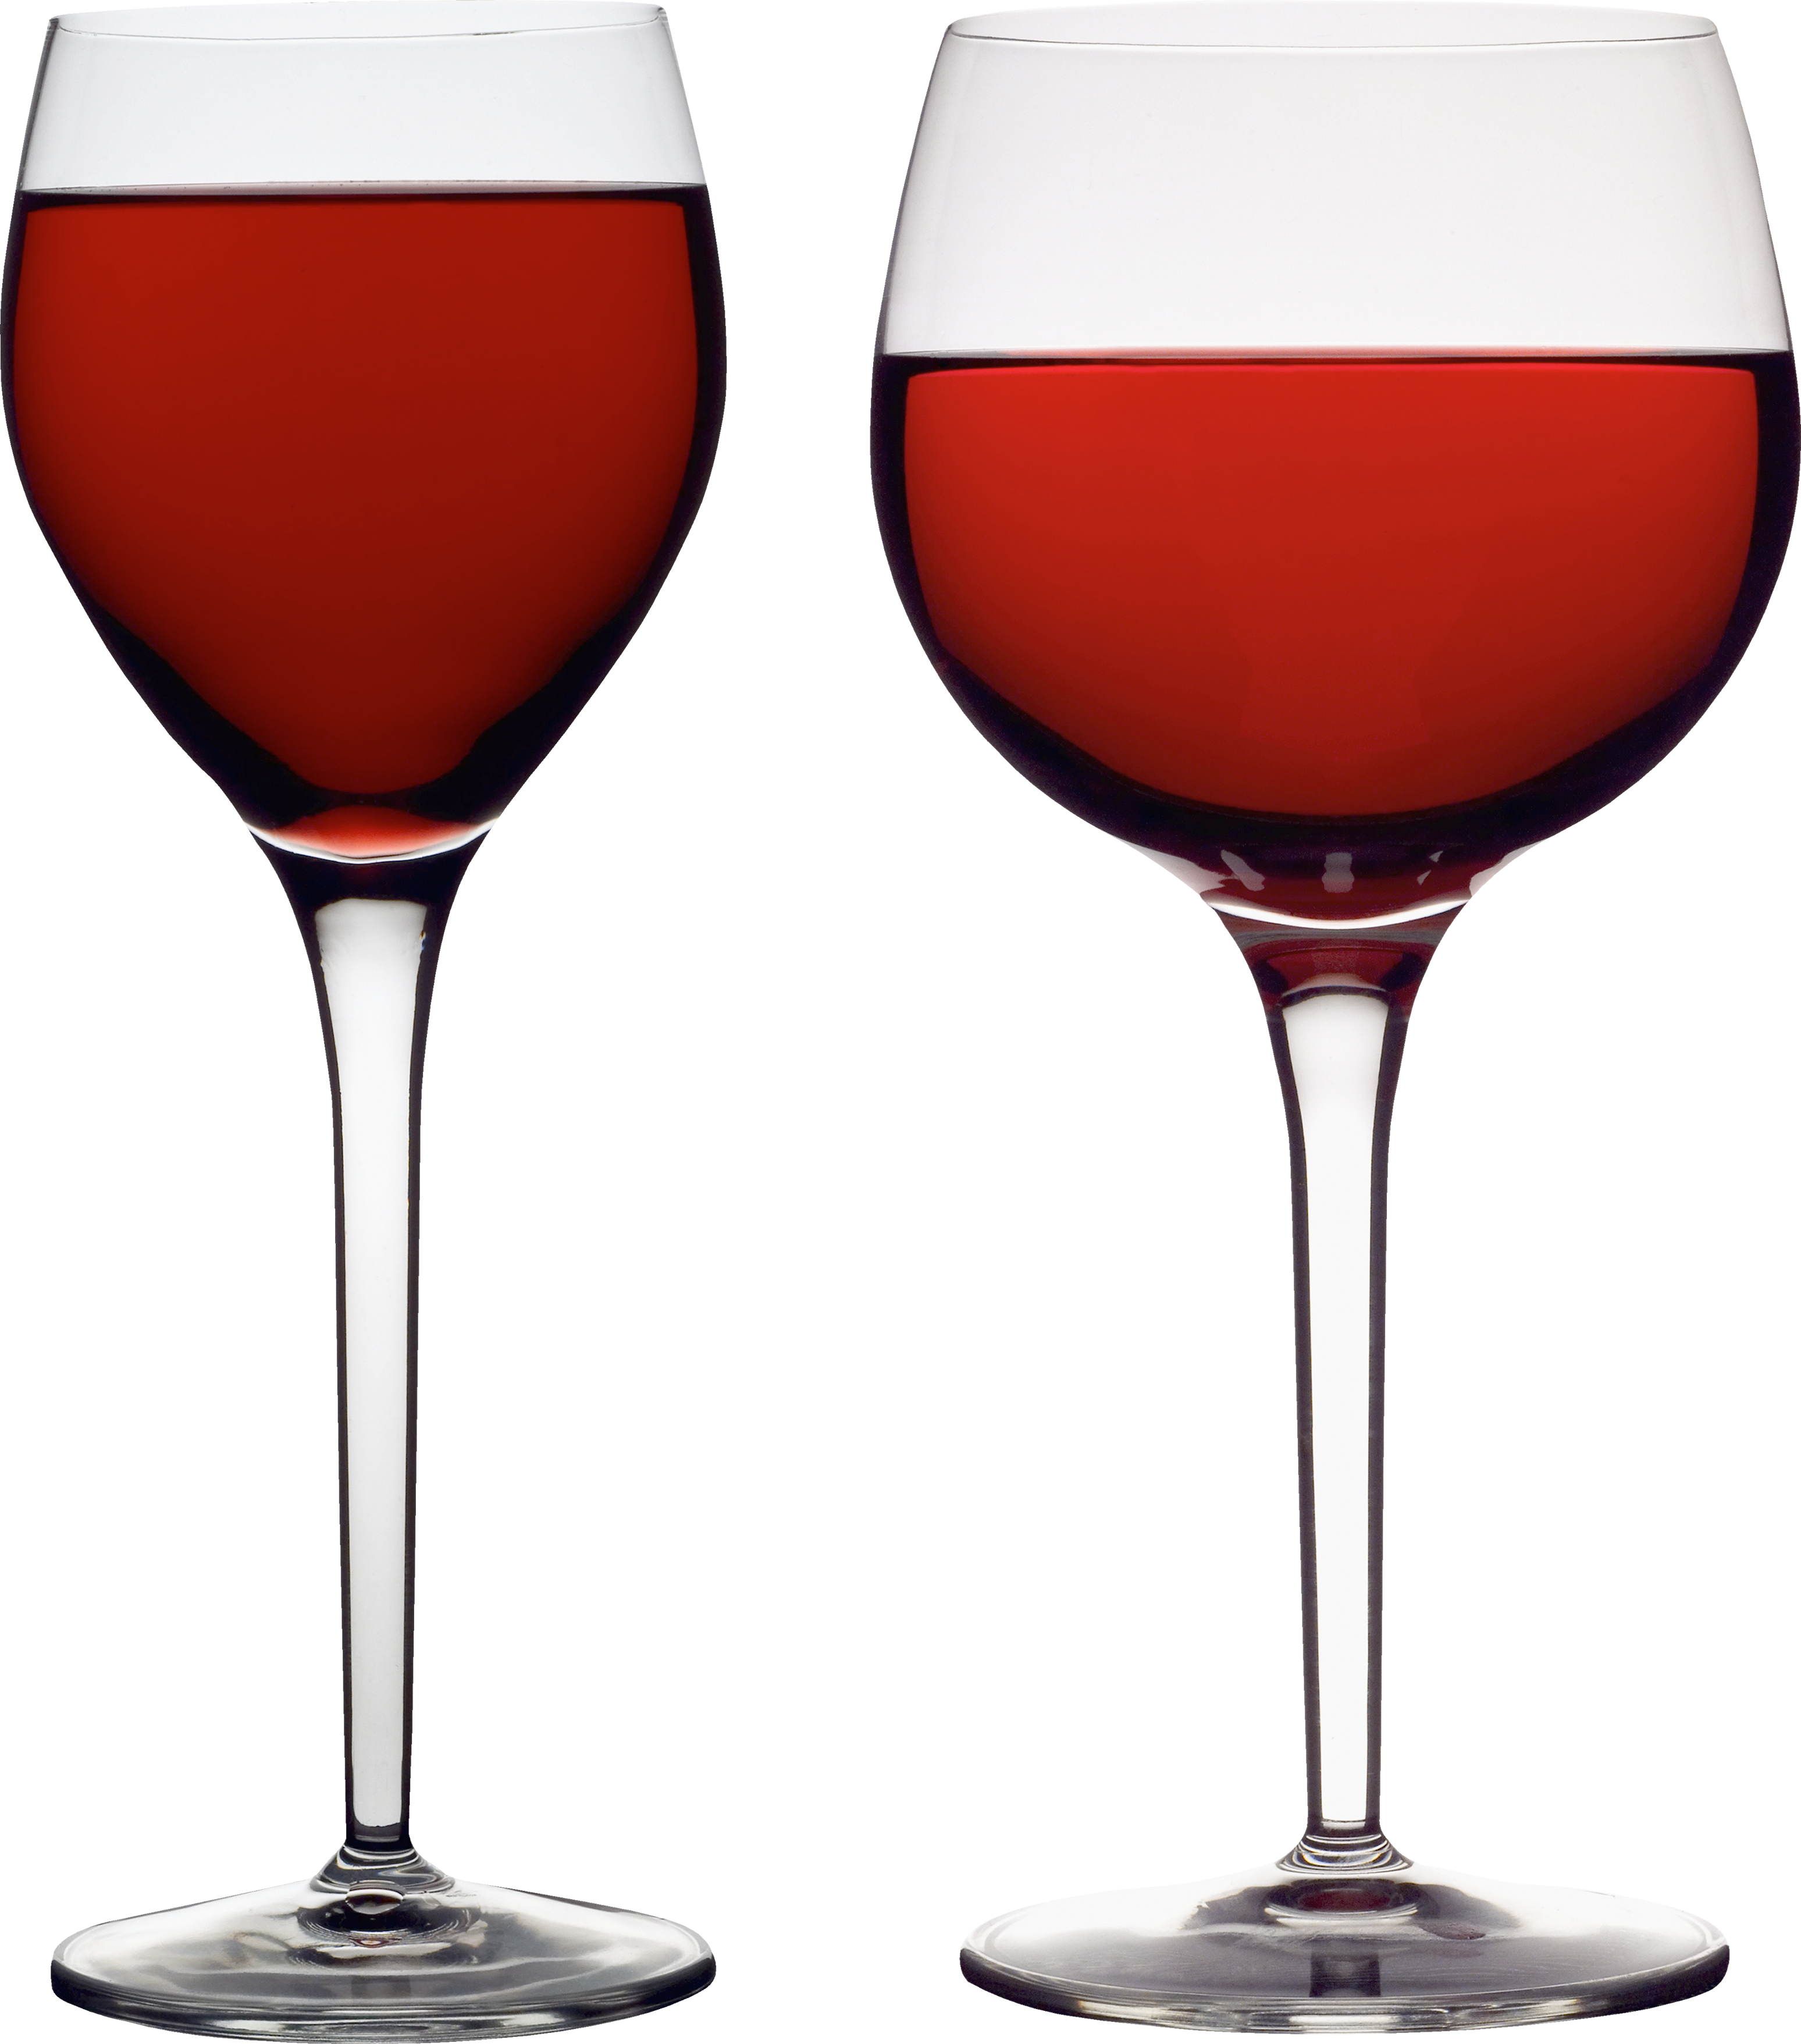 Jokingart com. Drinking clipart red wine